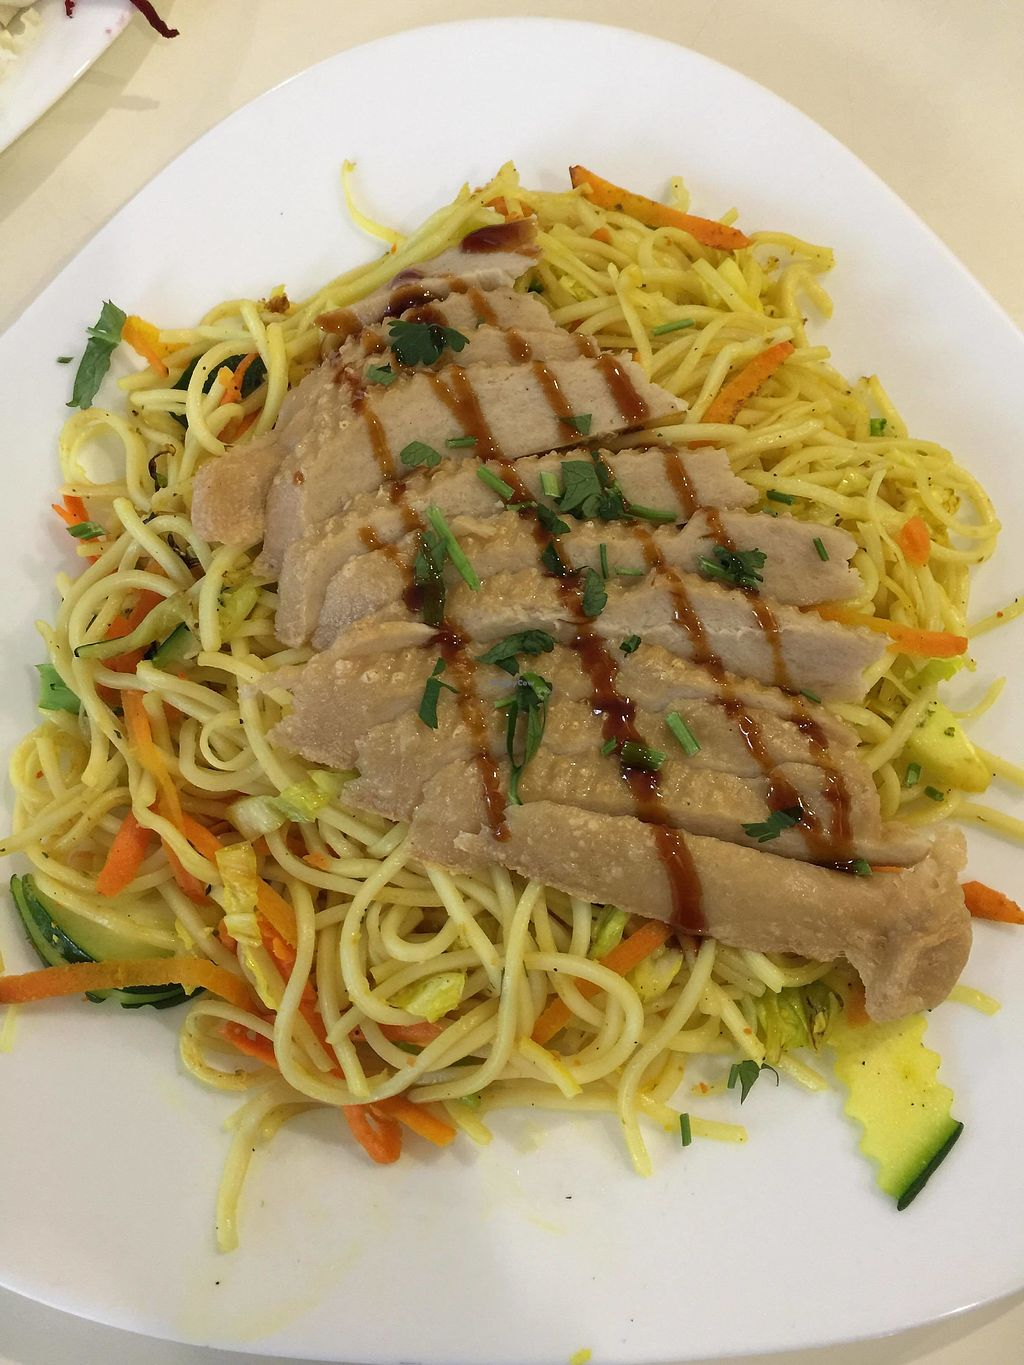 """Photo of Loving Hut - Warynskiego  by <a href=""""/members/profile/FernandoMoreira"""">FernandoMoreira</a> <br/>""""chicken"""" with noodles <br/> February 20, 2018  - <a href='/contact/abuse/image/43710/361881'>Report</a>"""